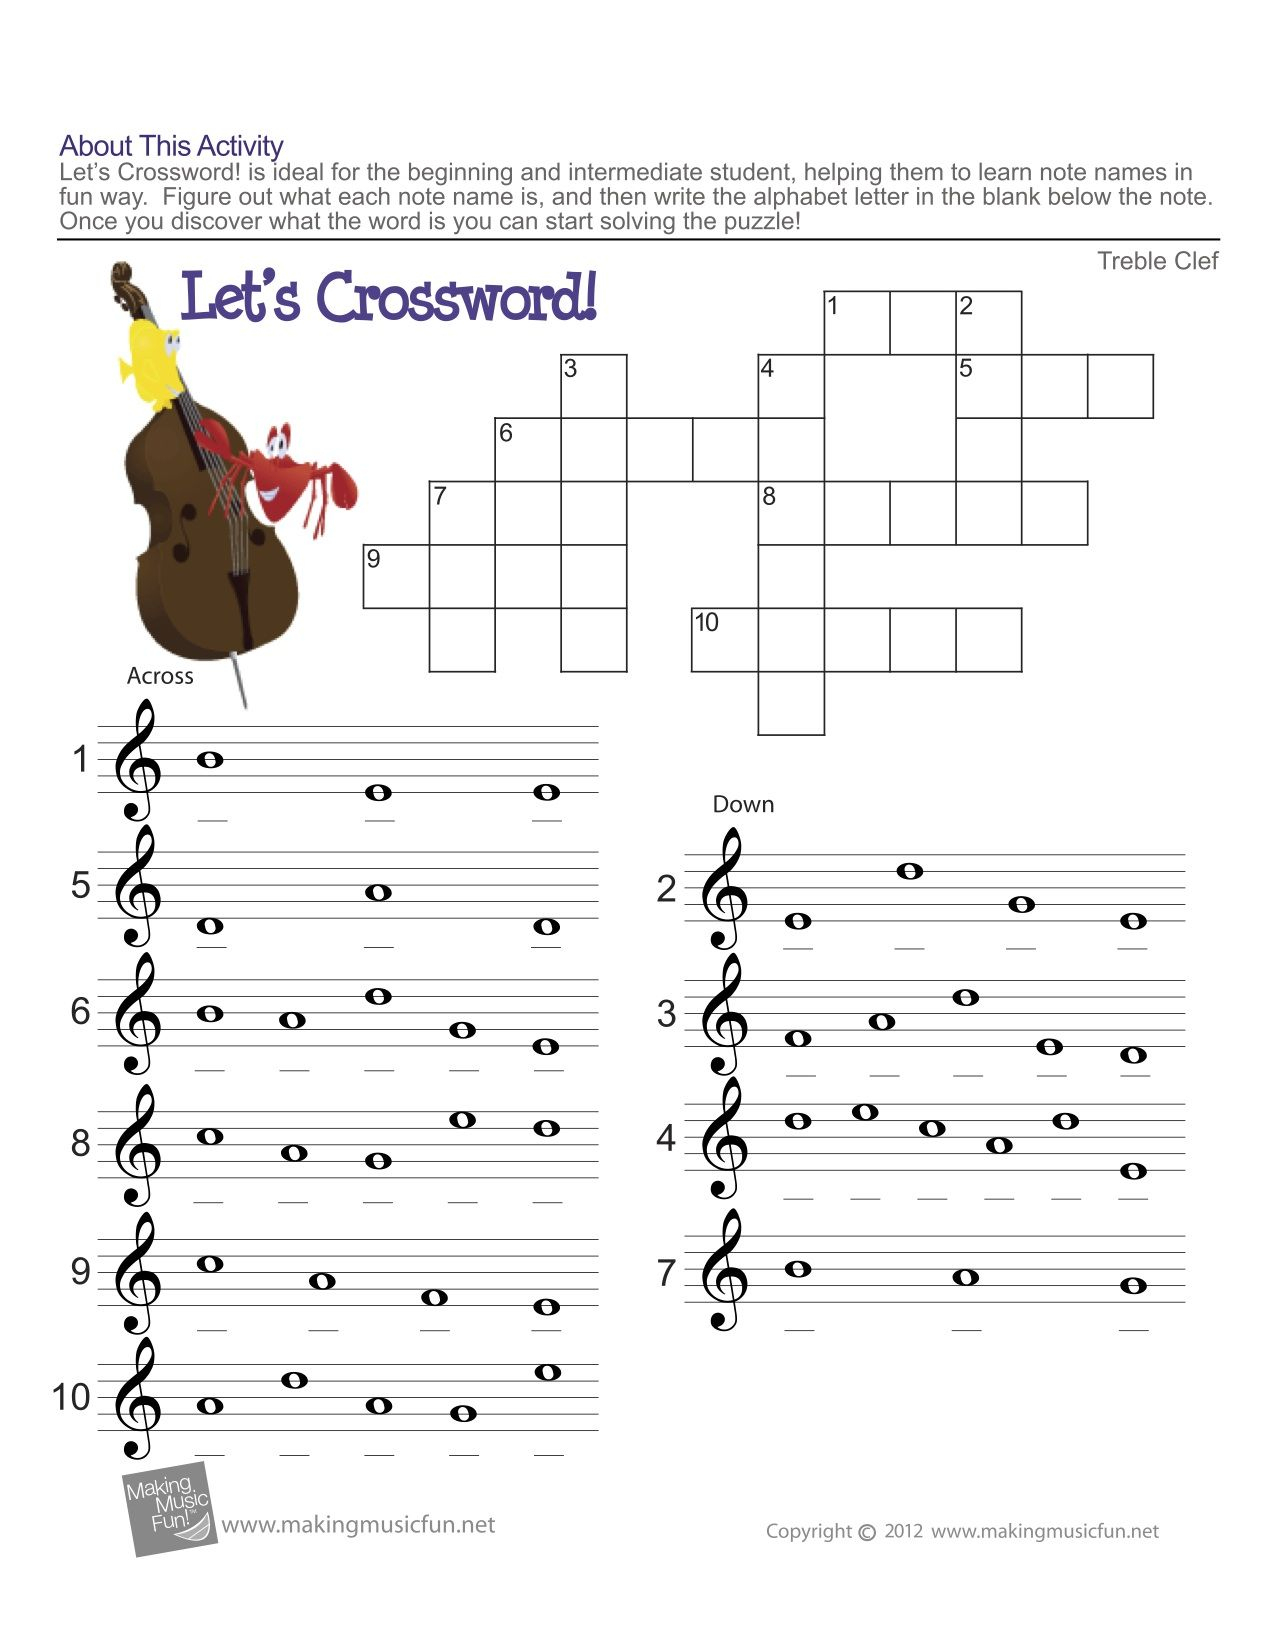 Bass Clef Ledger Lines Only Note Recognition Worksheet